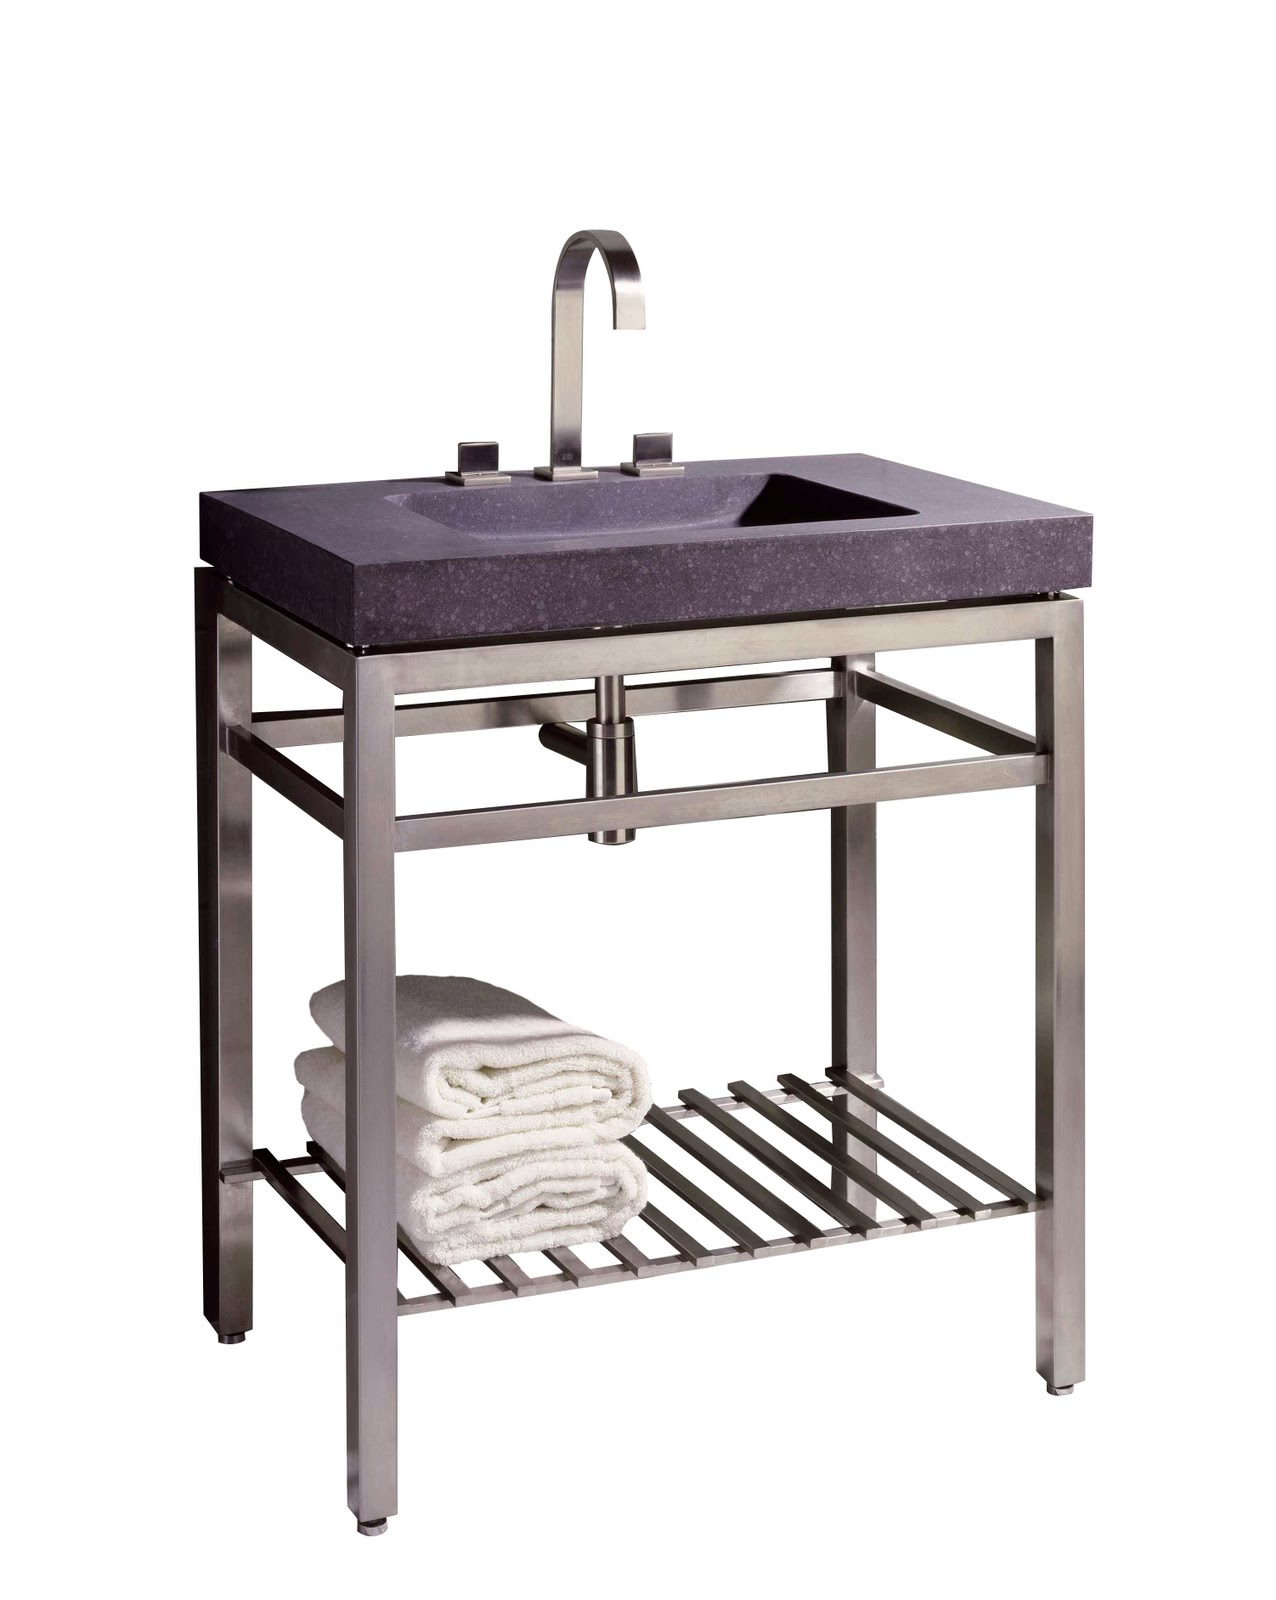 High Quality Outdoor Sink Stainless Steel Sync Drop In Vessel Sink Sync